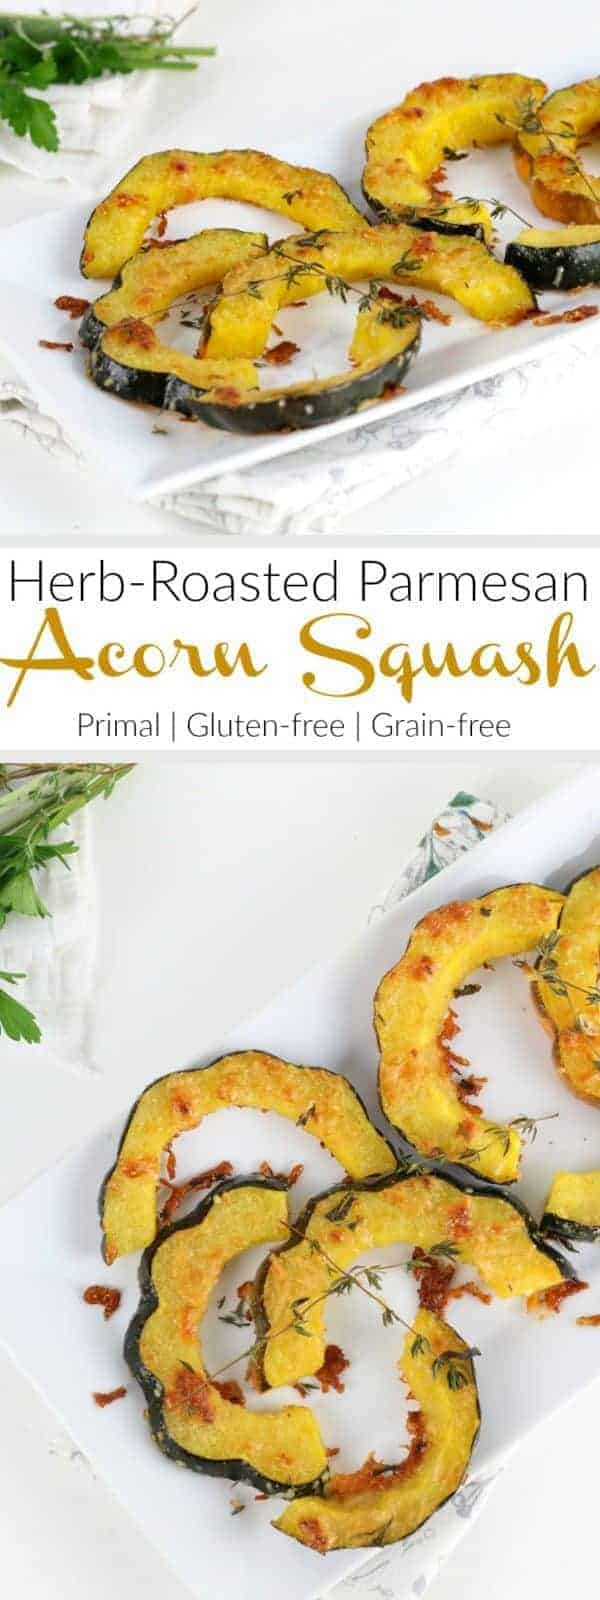 Going beyond the brown sugar with this Herb-Roasted Parmesan Acorn Squash recipe. The perfect side-dish that's made with just 5 ingredients | Primal | Gluten-free | Grain-free | Vegetarian | therealfoodrds.com